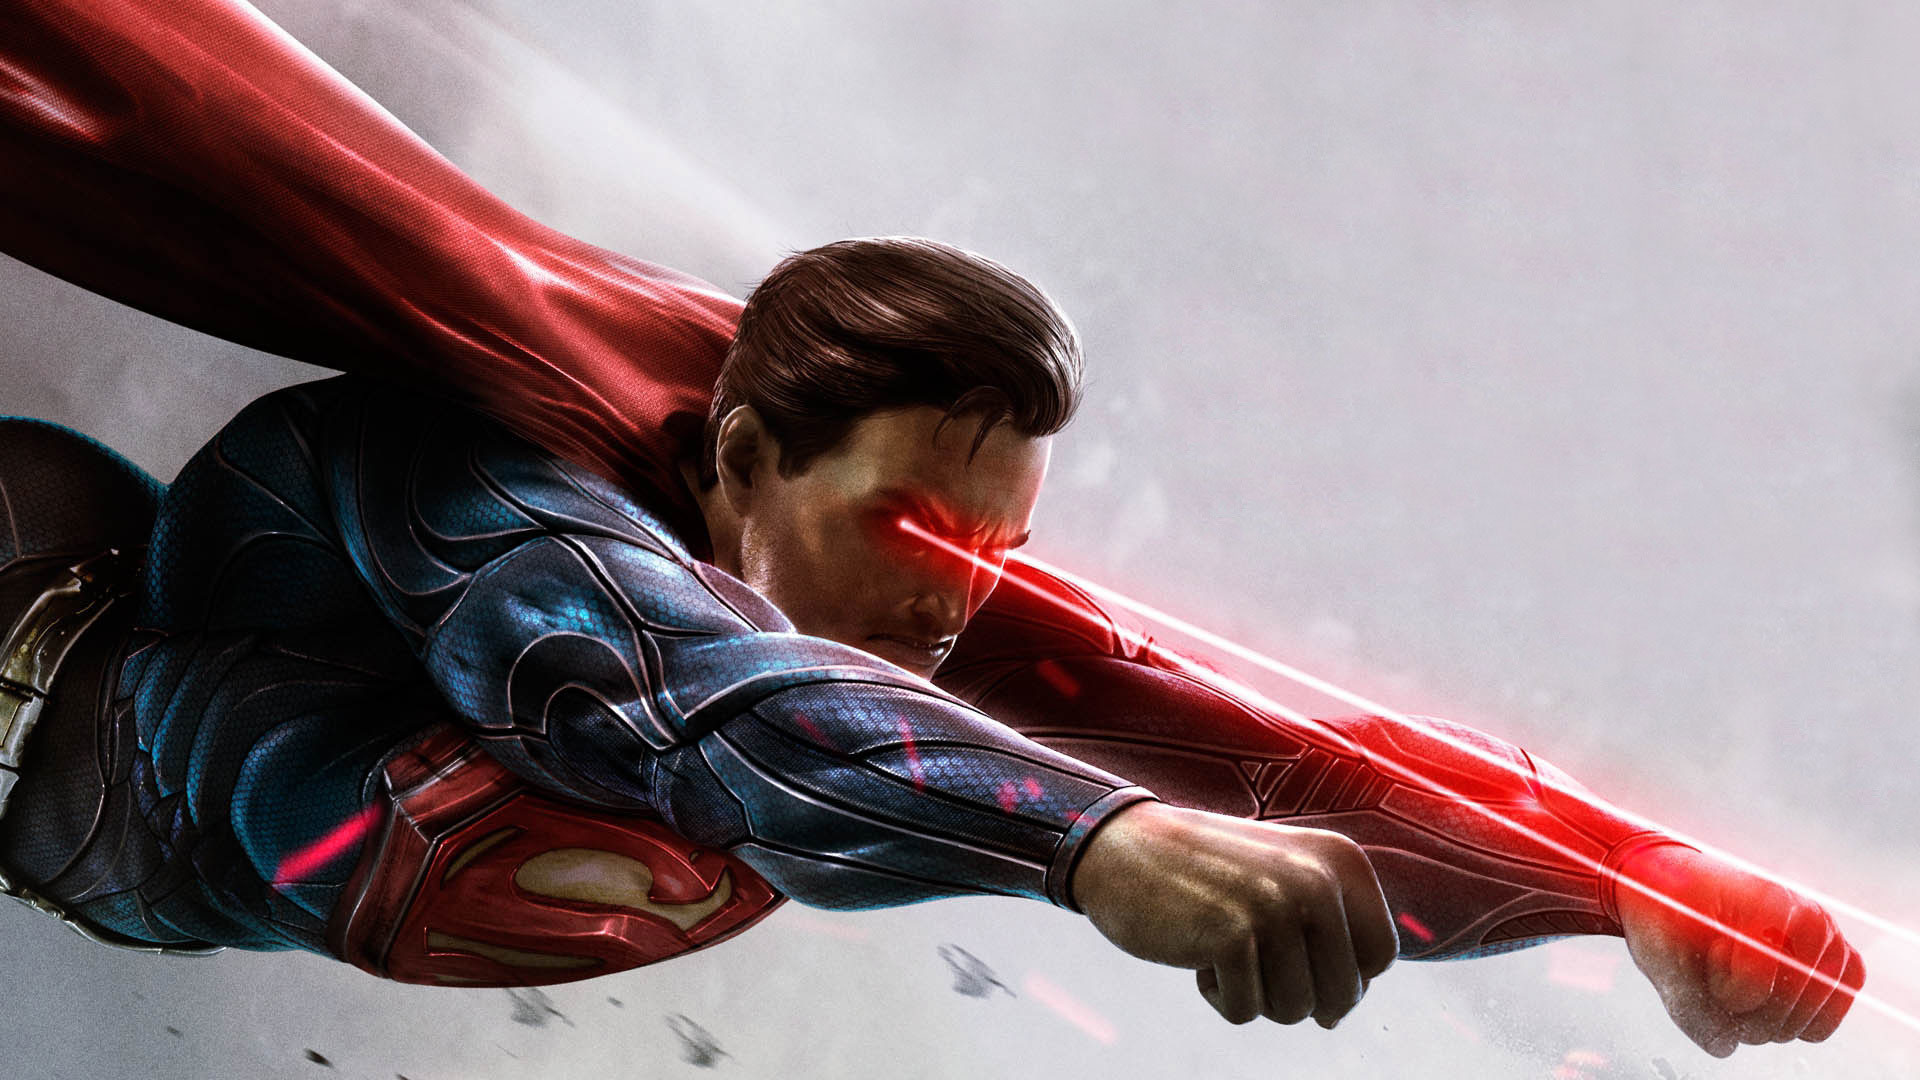 Superman hd wallpapers 1080p 68 images 1920x1080 superman man of steel wallpaper 1920 x 1080p voltagebd